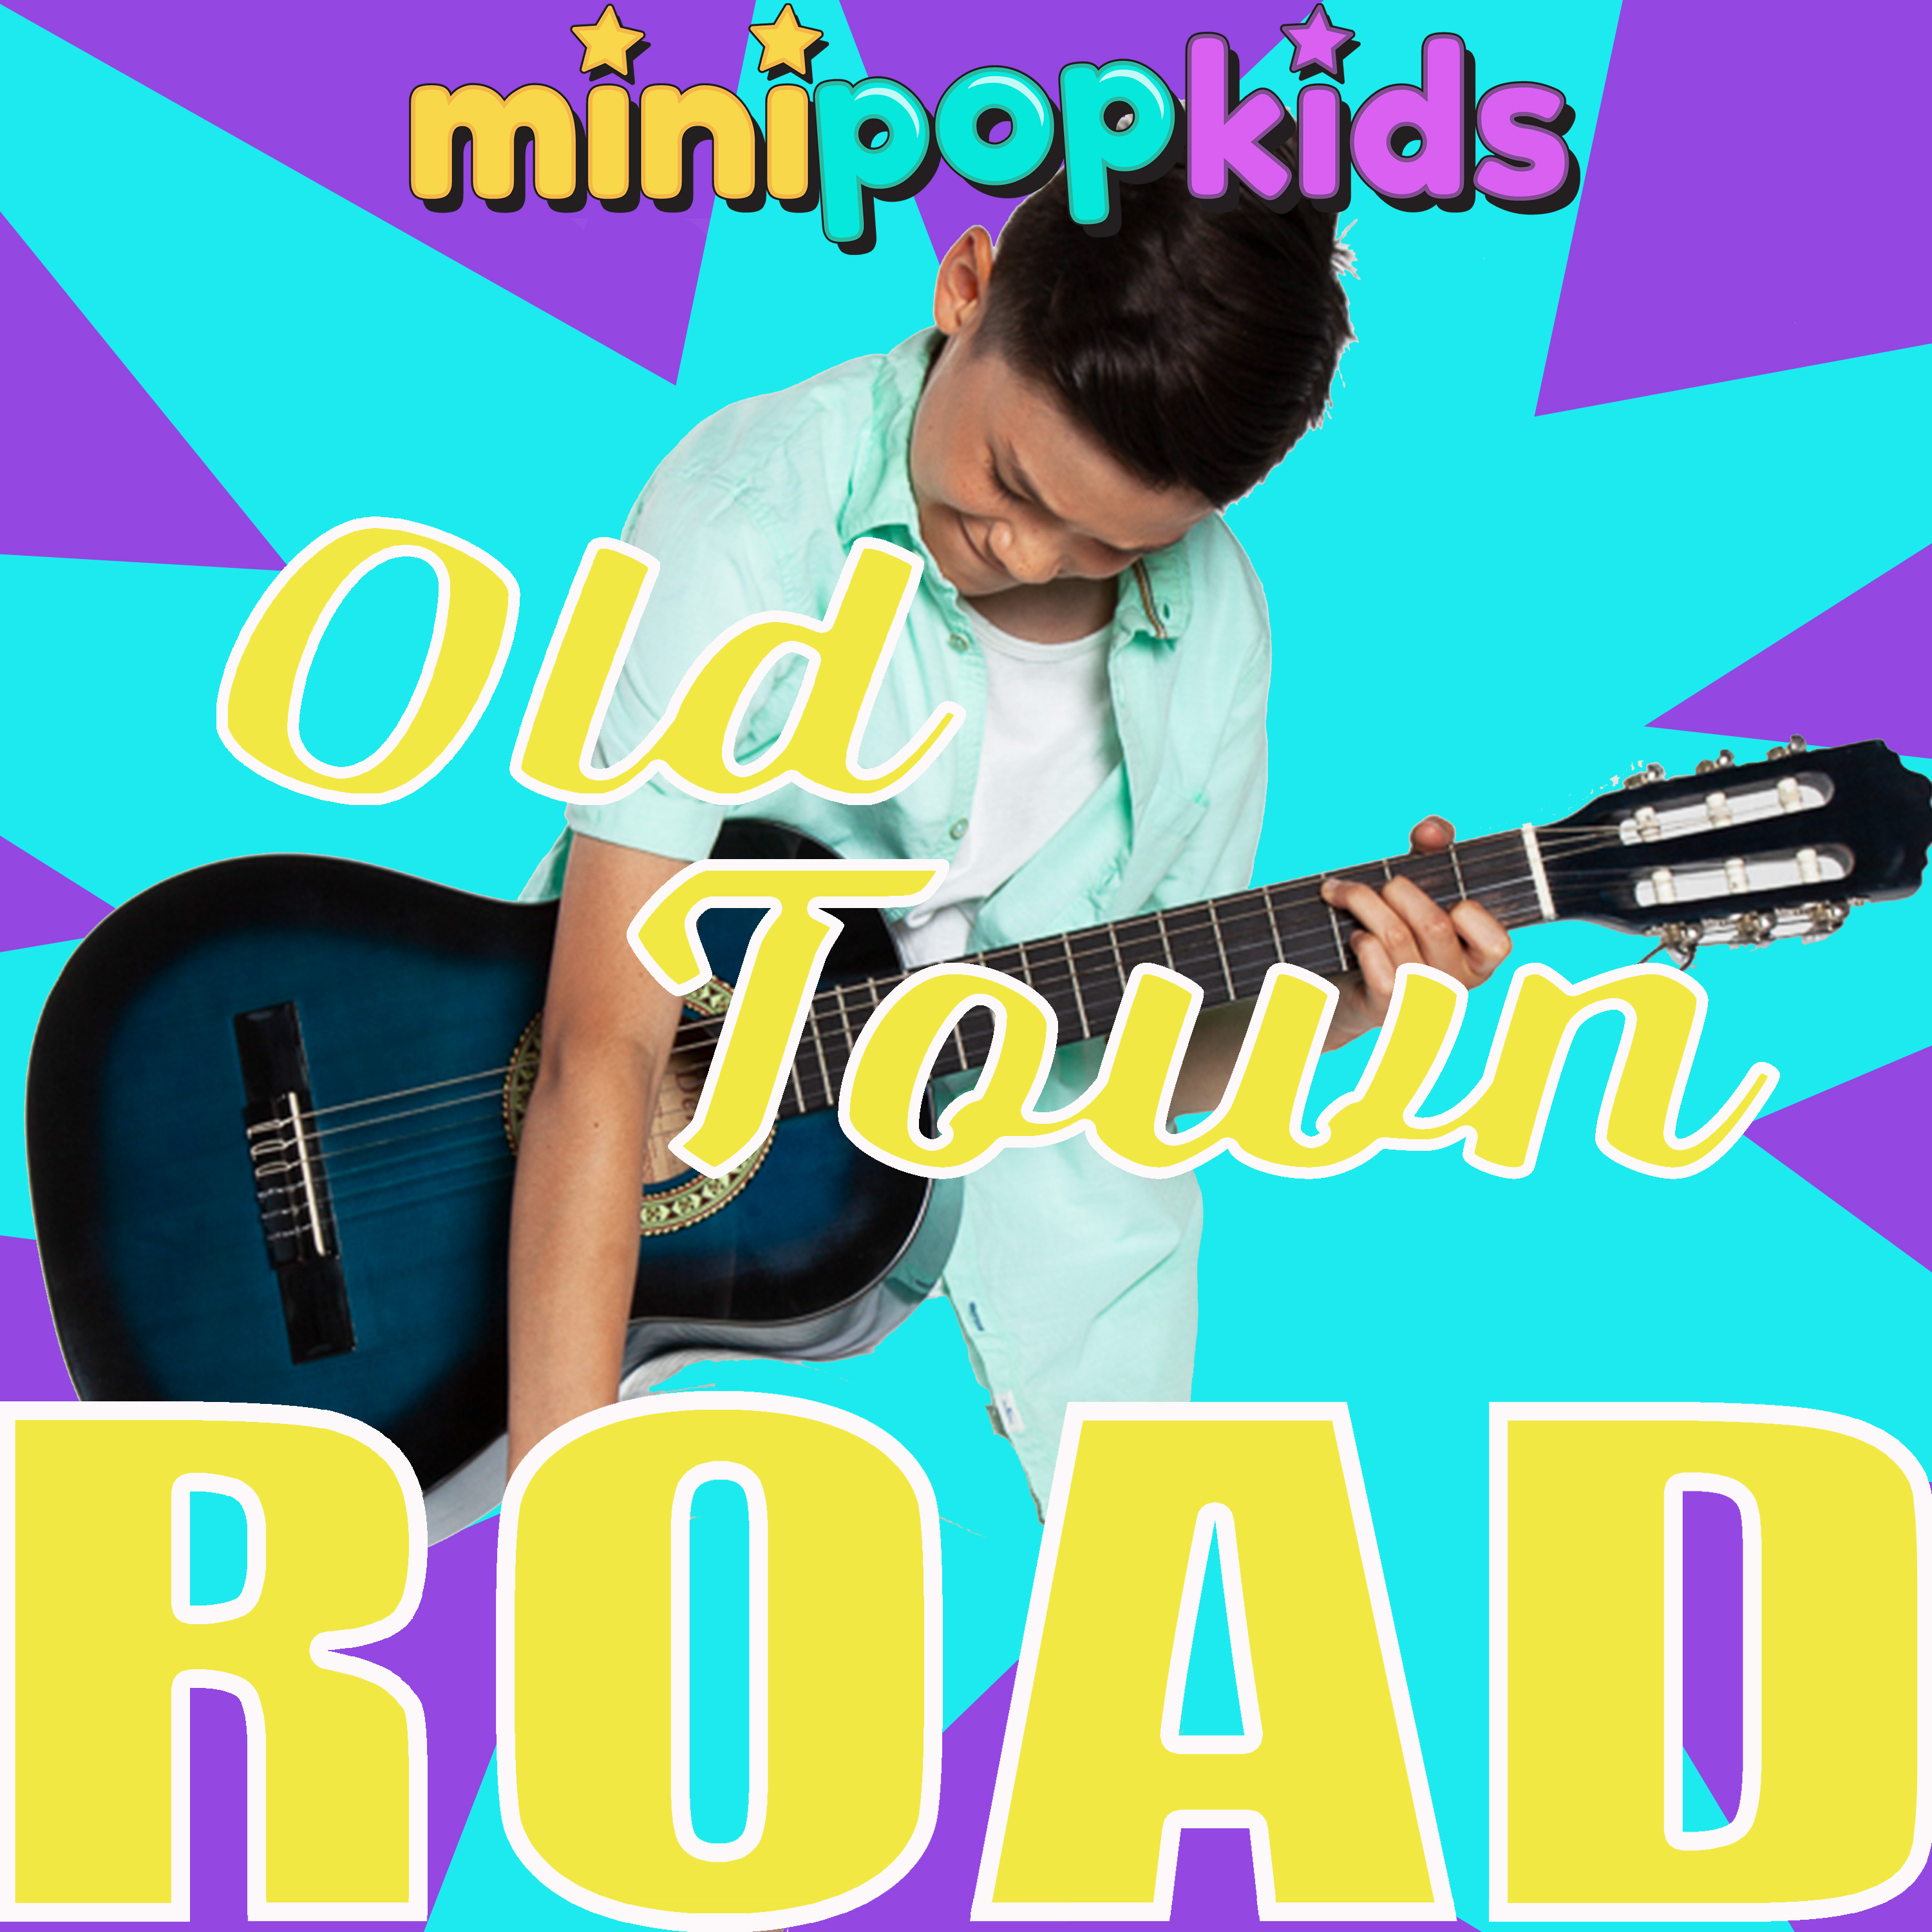 Old Town Road Mini Pop Kids